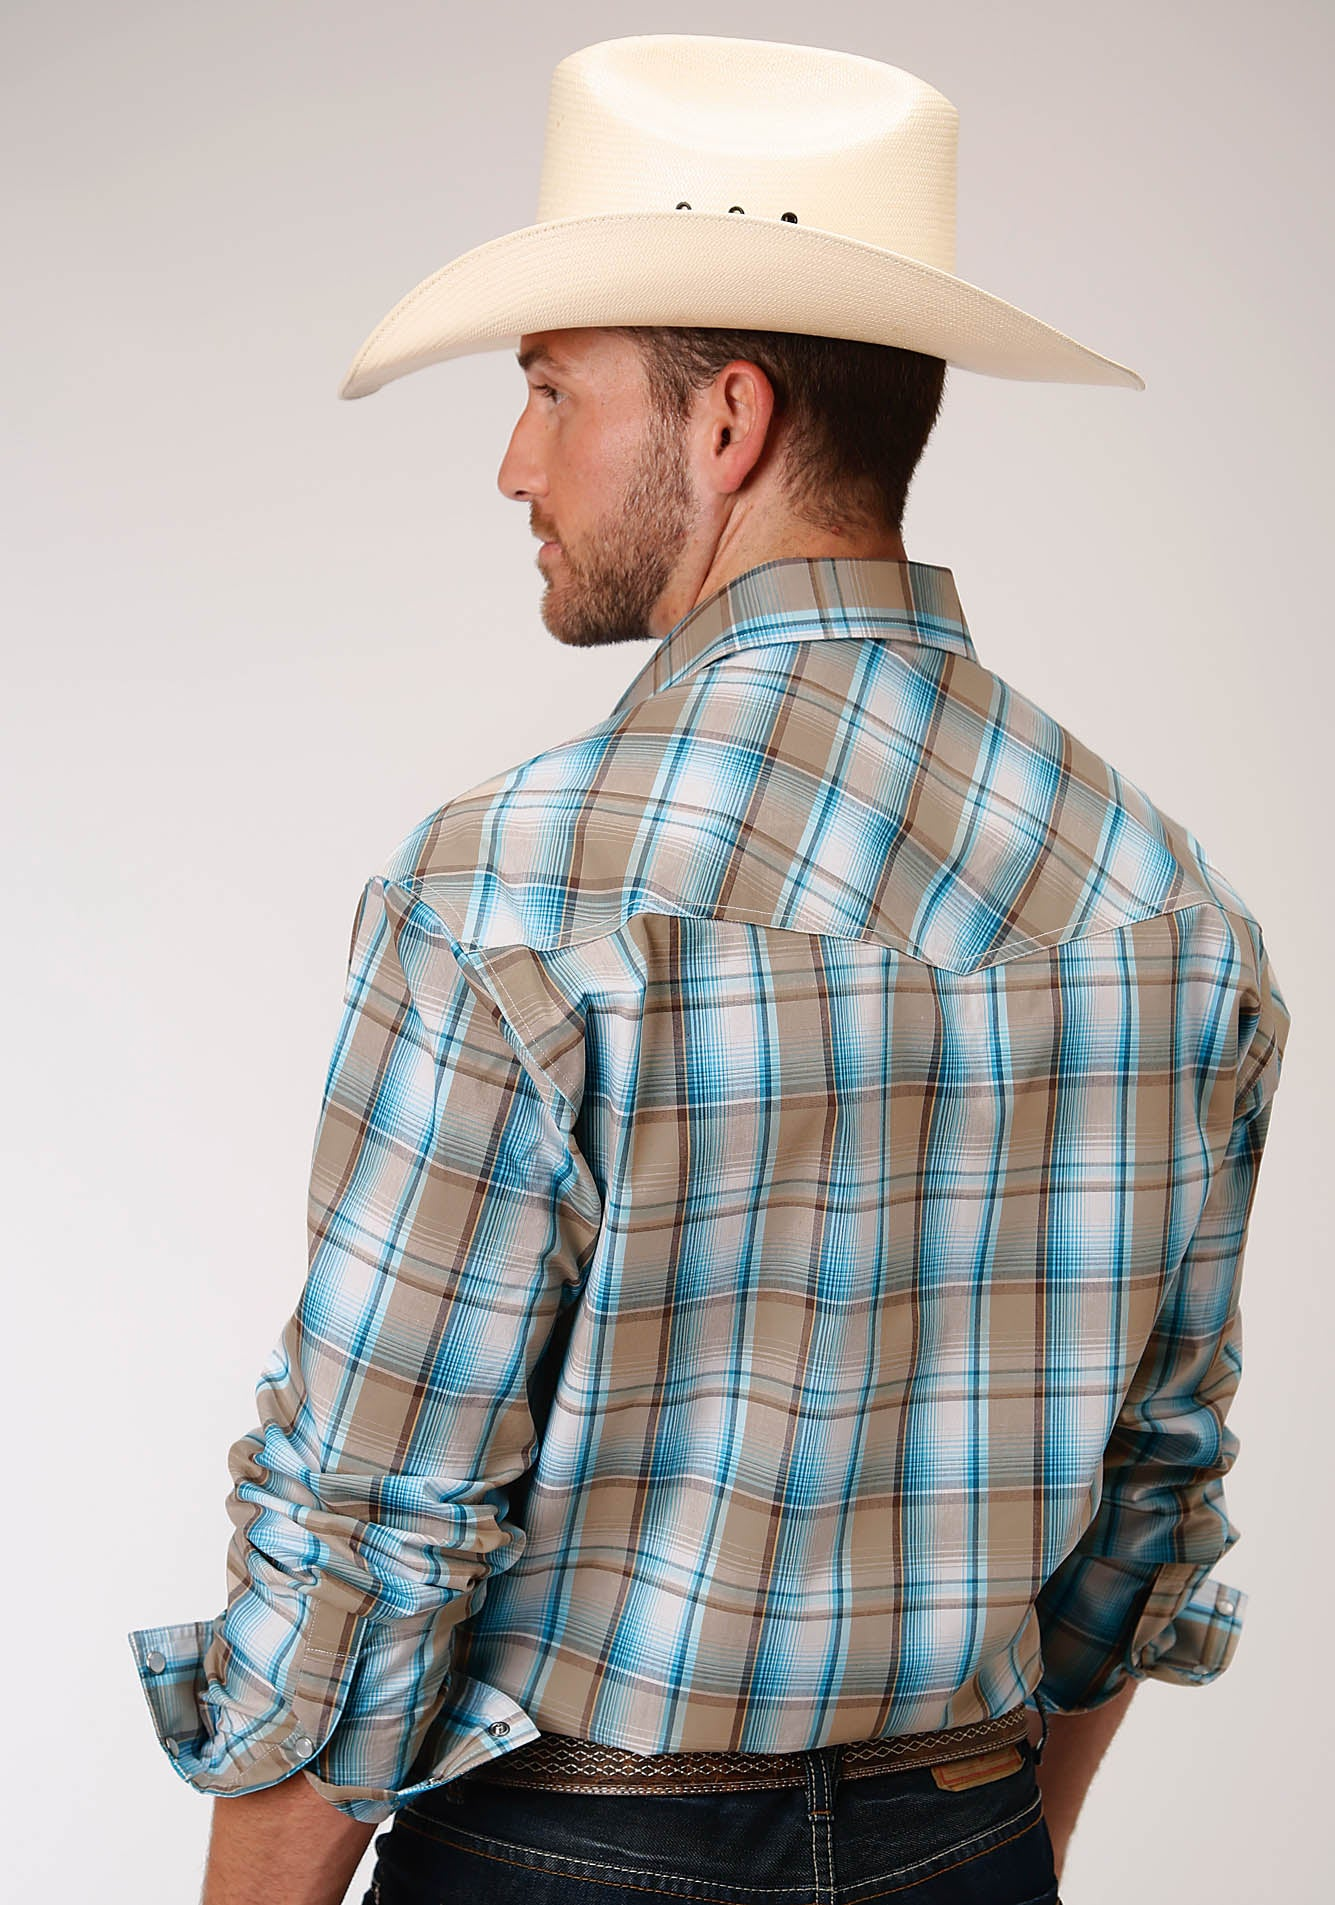 ROPER MENS BLUE 00162 SEASIDE PLAID MEN'S AMARILLO COLLECTION - DESERT SKY LONG SLEEVE